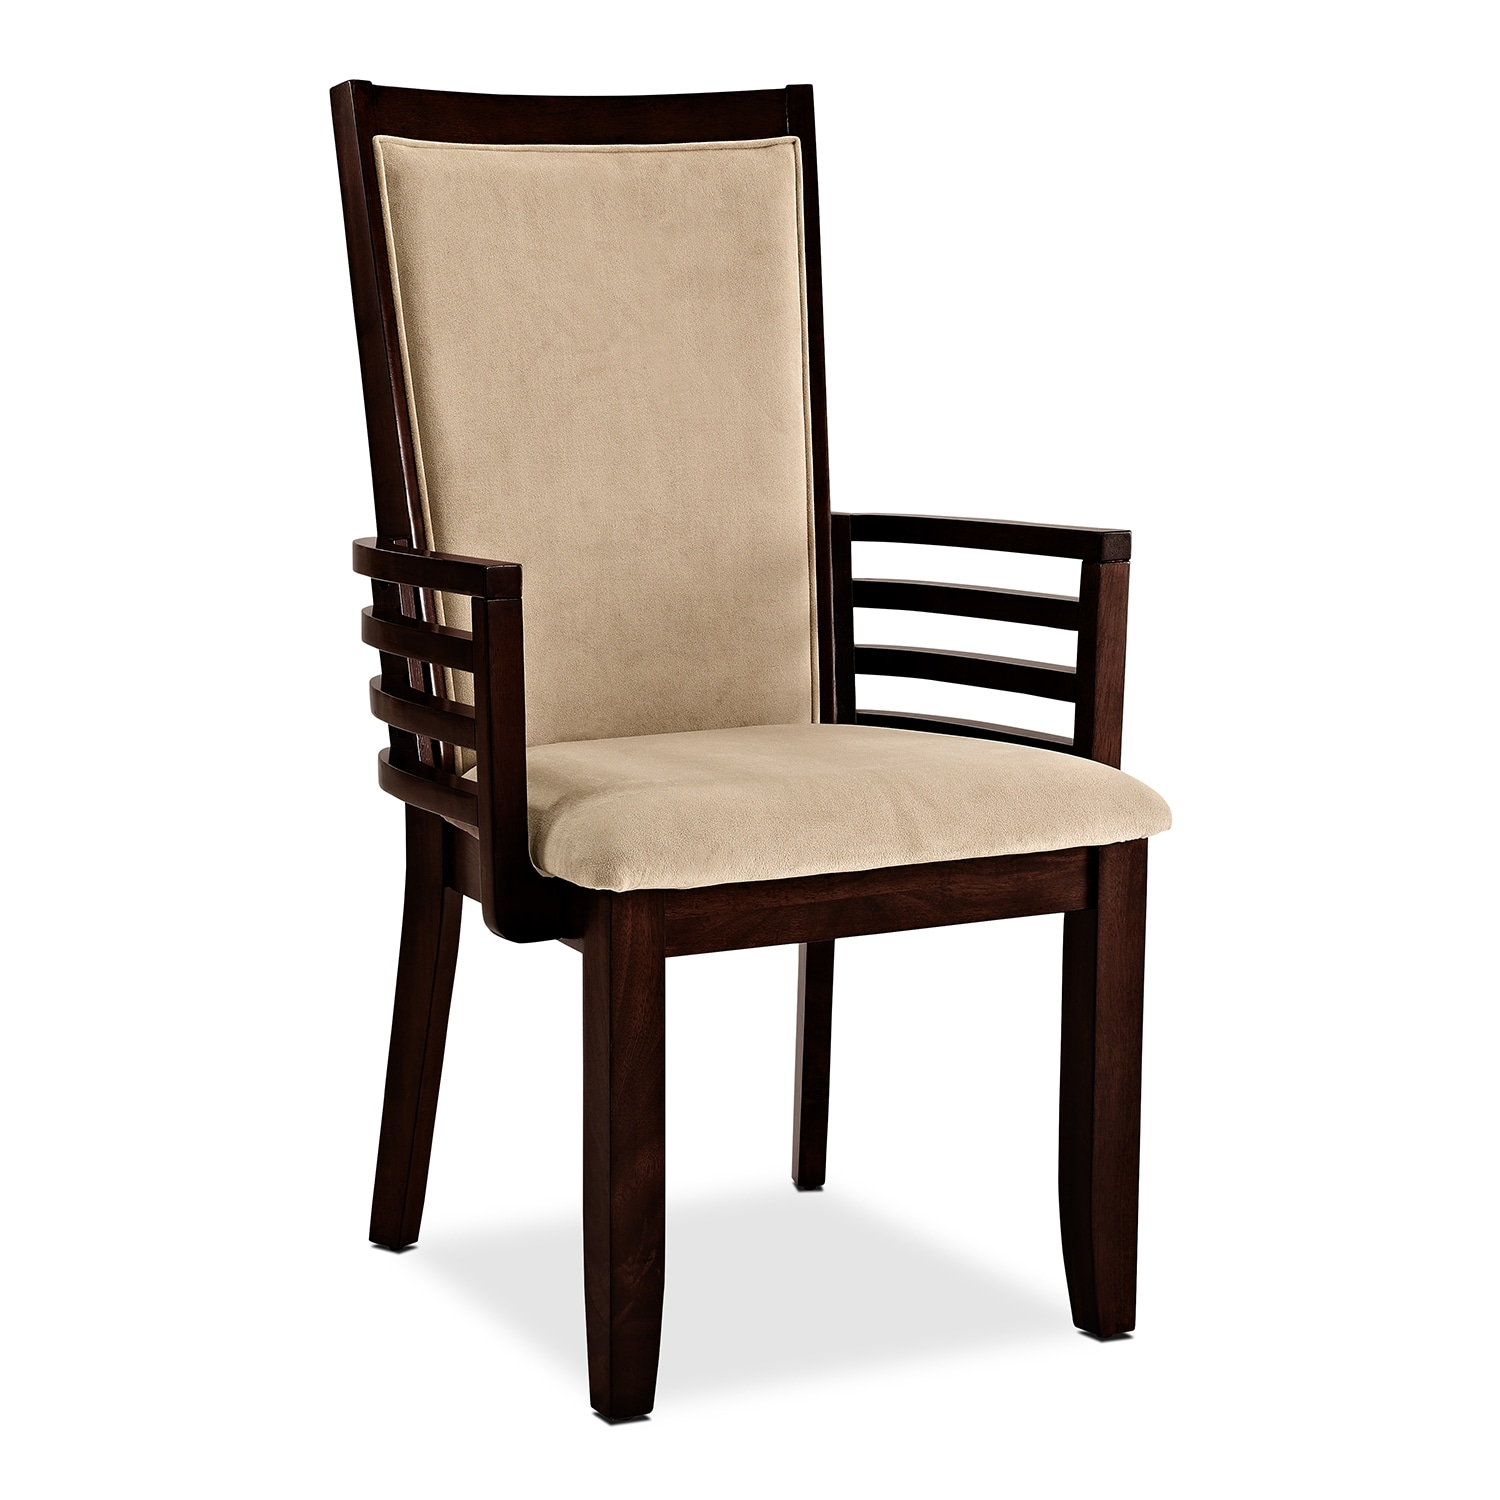 Furnishings for every room online and store furniture for Z dining room chairs